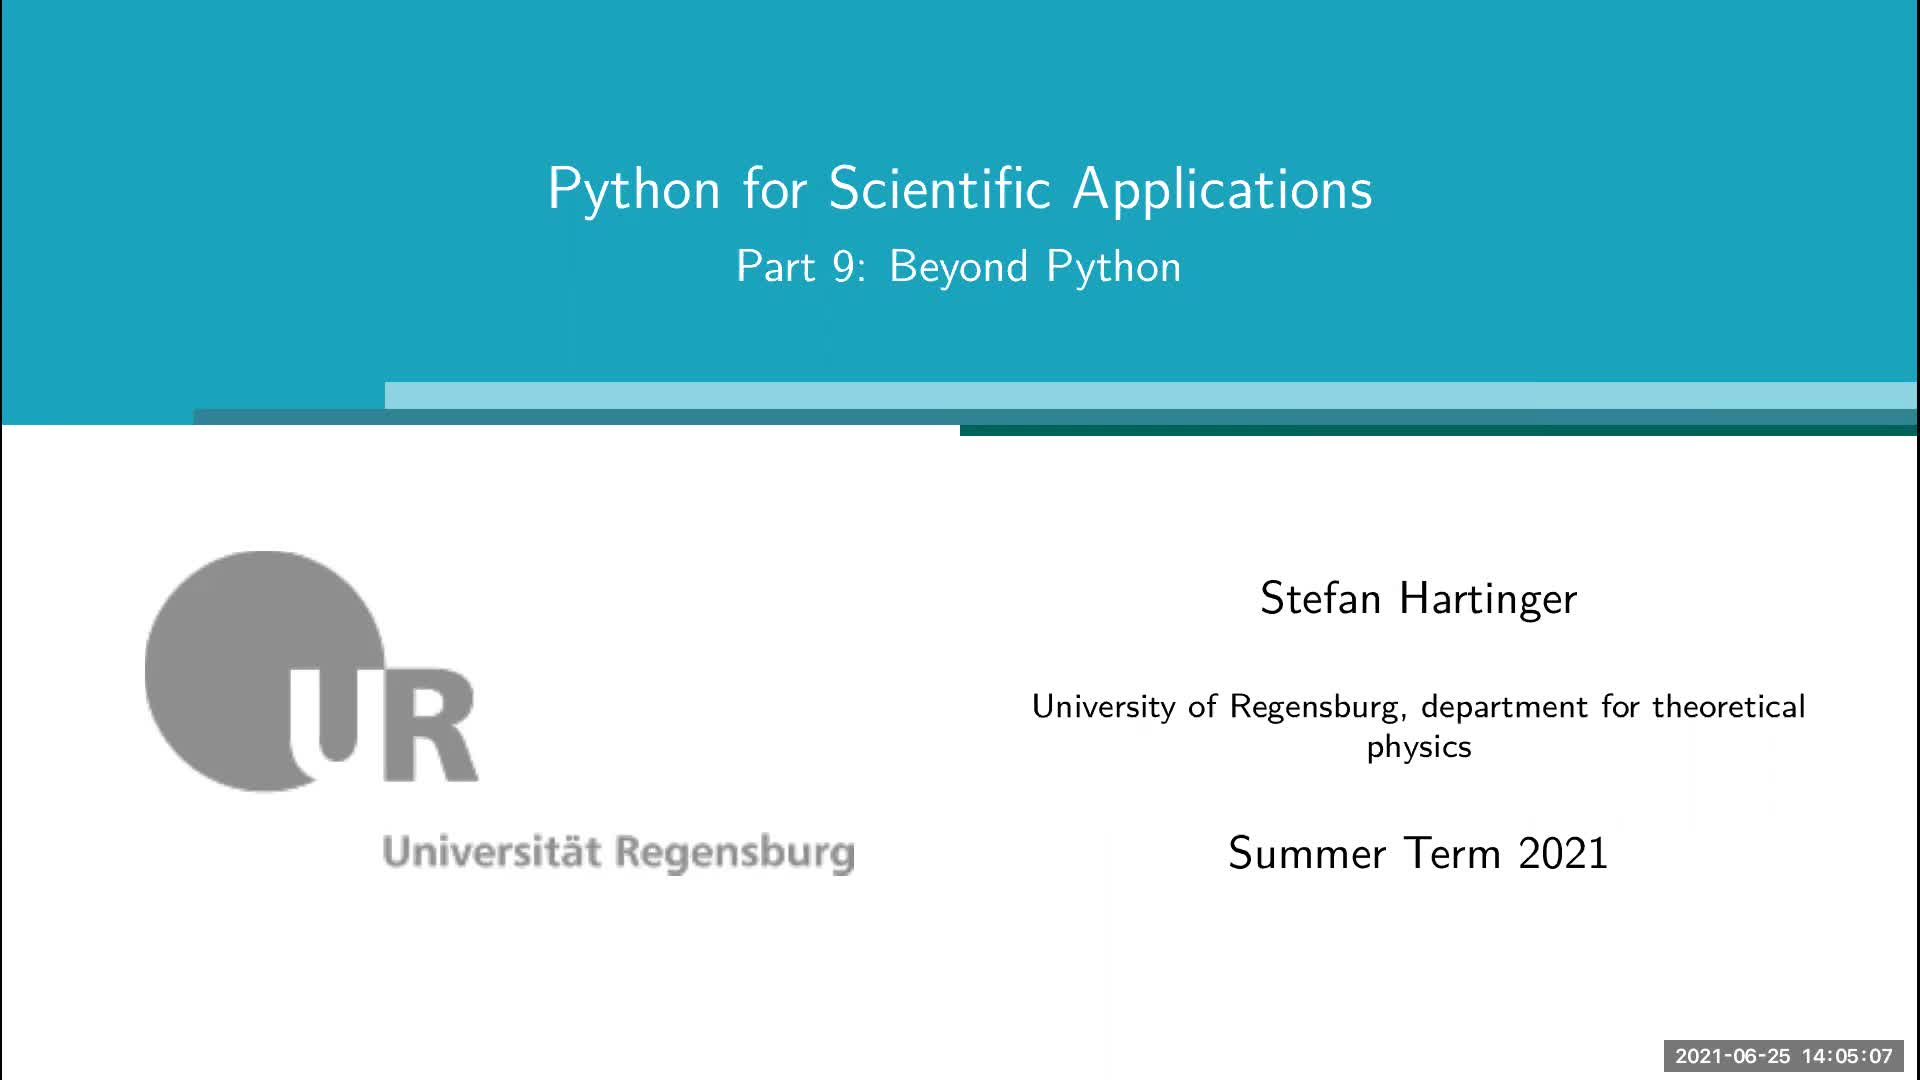 Lecture 09: Beyond Python